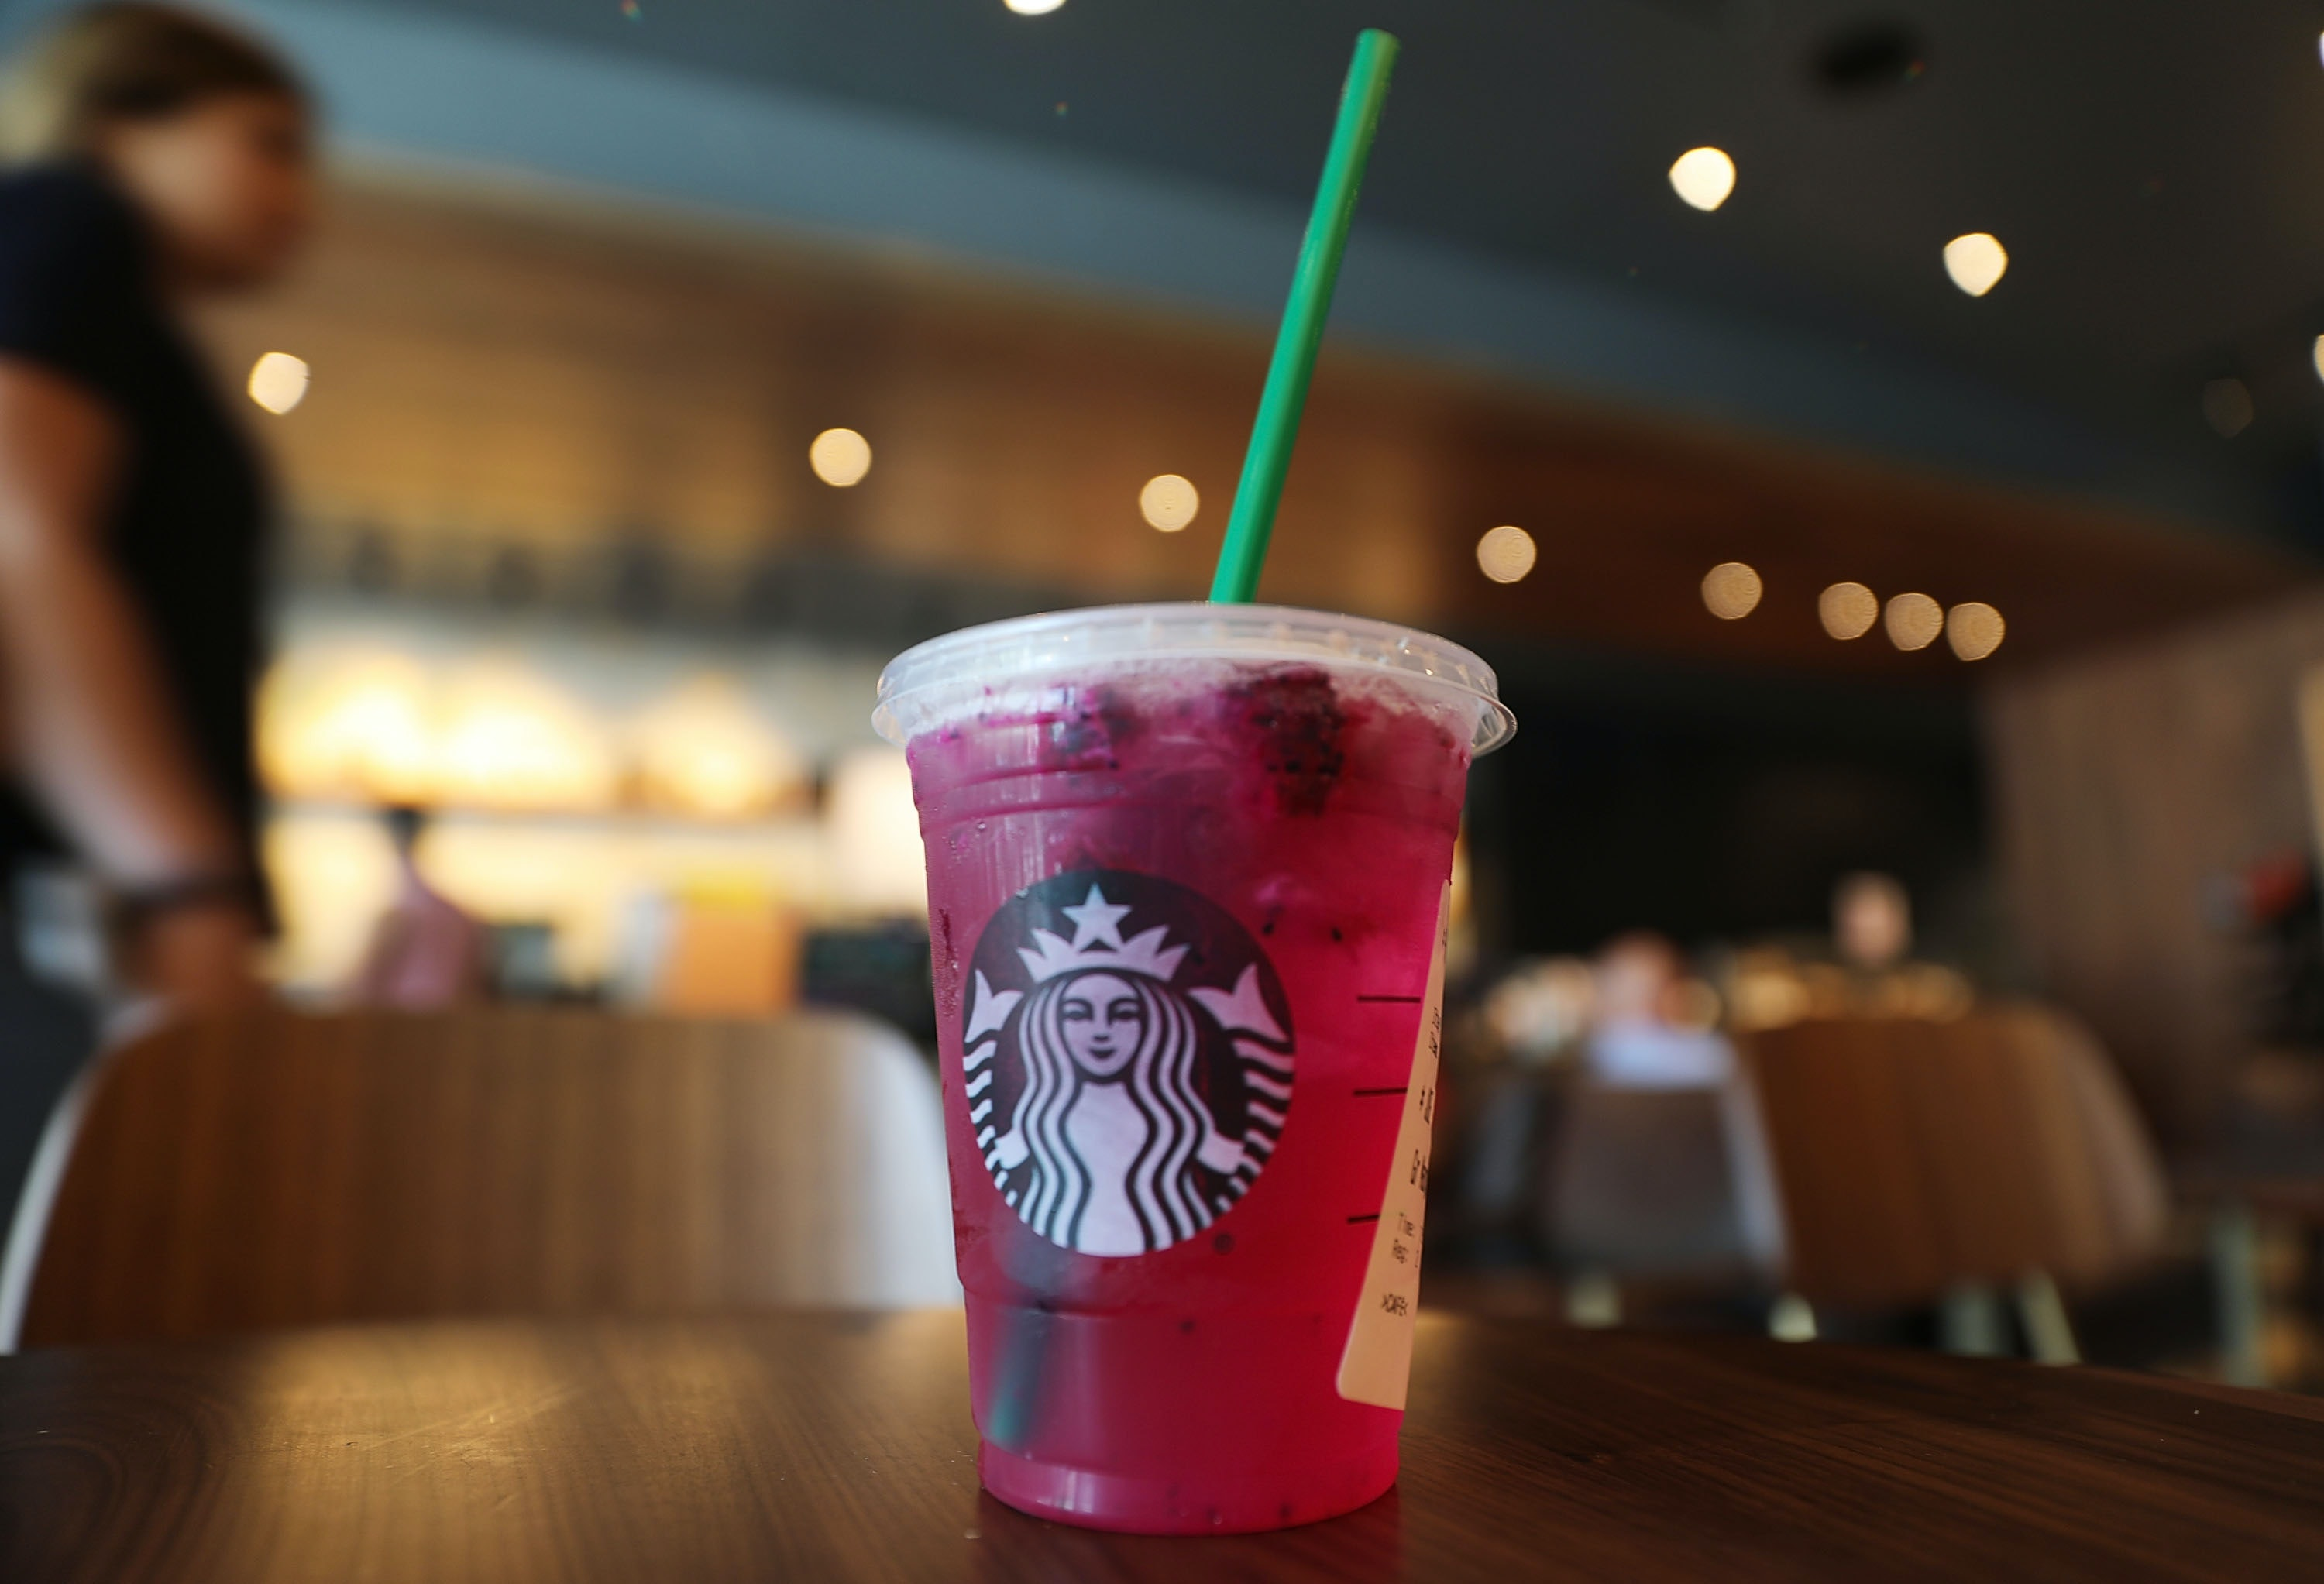 Here S How To Order The Tiktok Drink At Starbucks To Master